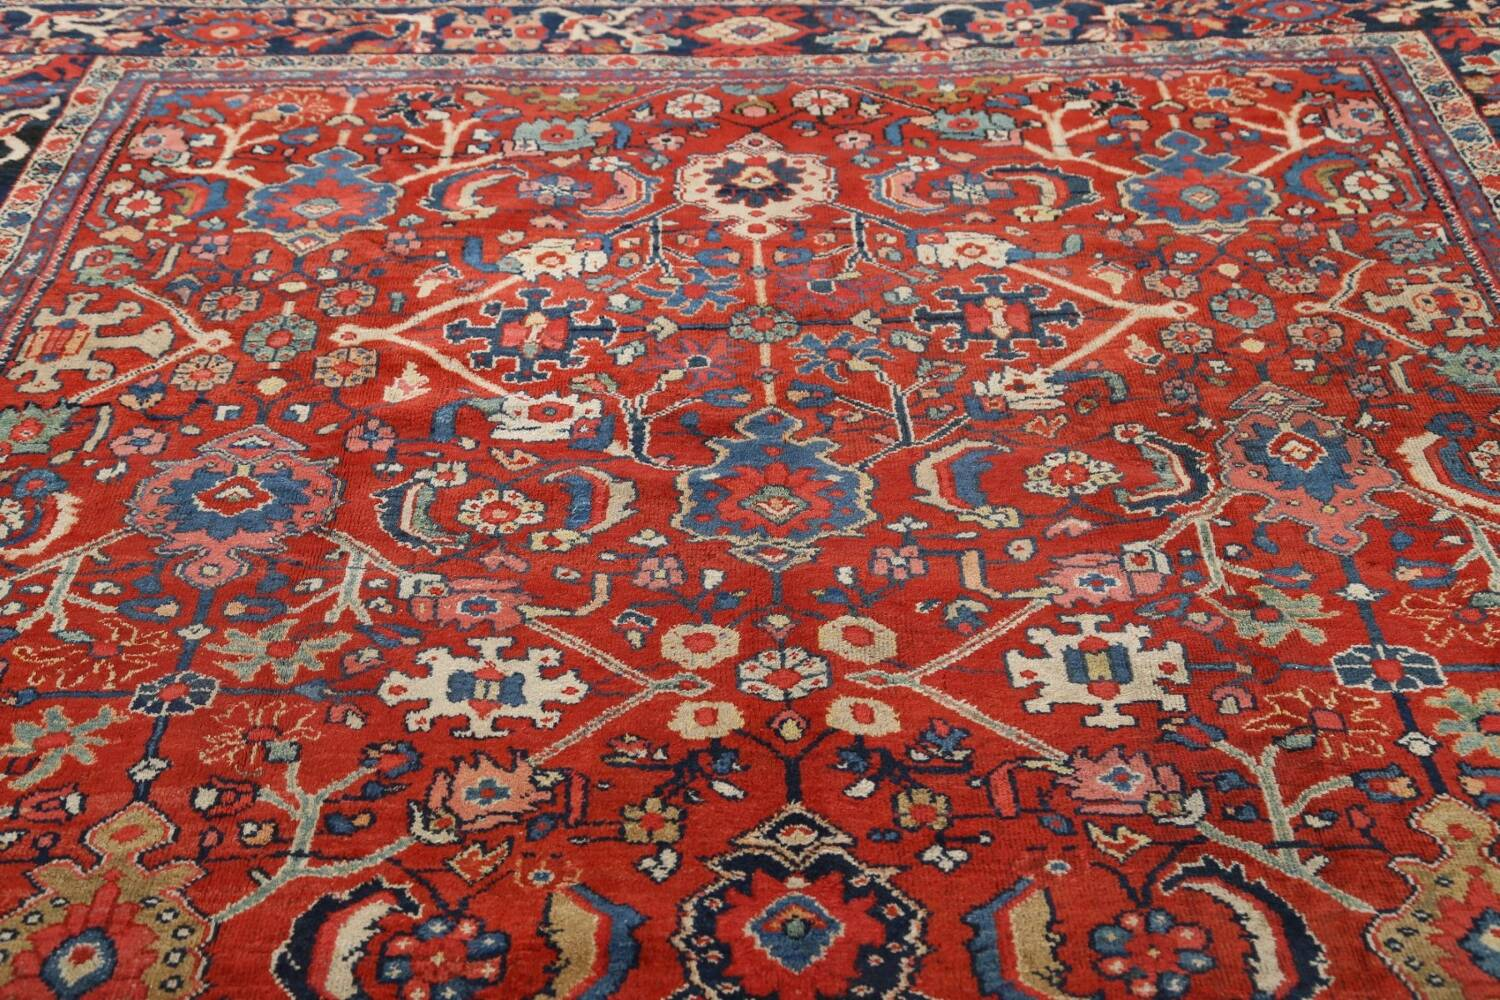 Antique Vegetable Dye Sultanabad Persian Area Rug 9x12 image 11